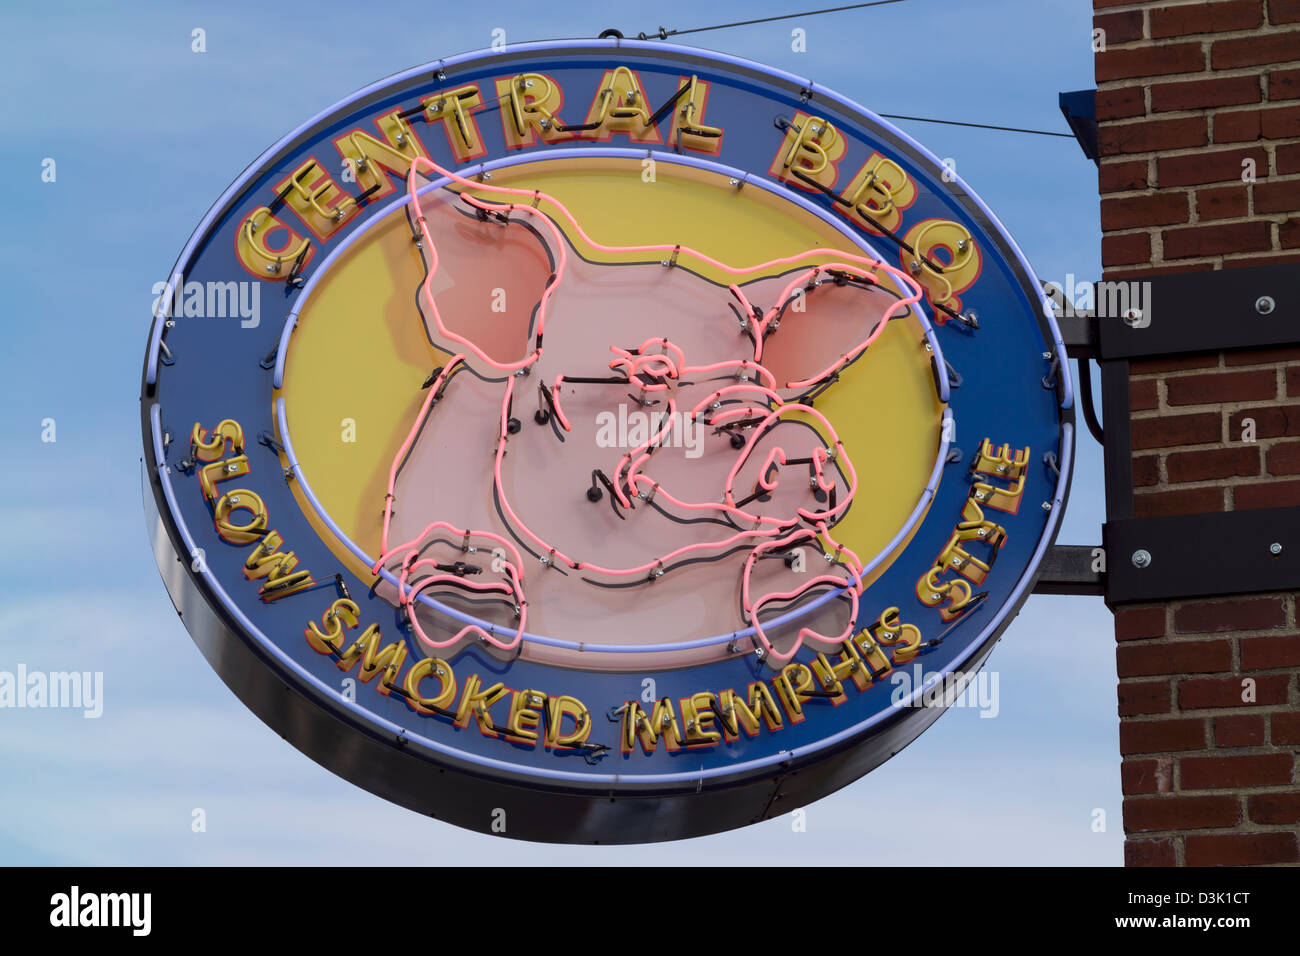 The neon sign outside of Central BBQ in Memphis, Tennessee. - Stock Image